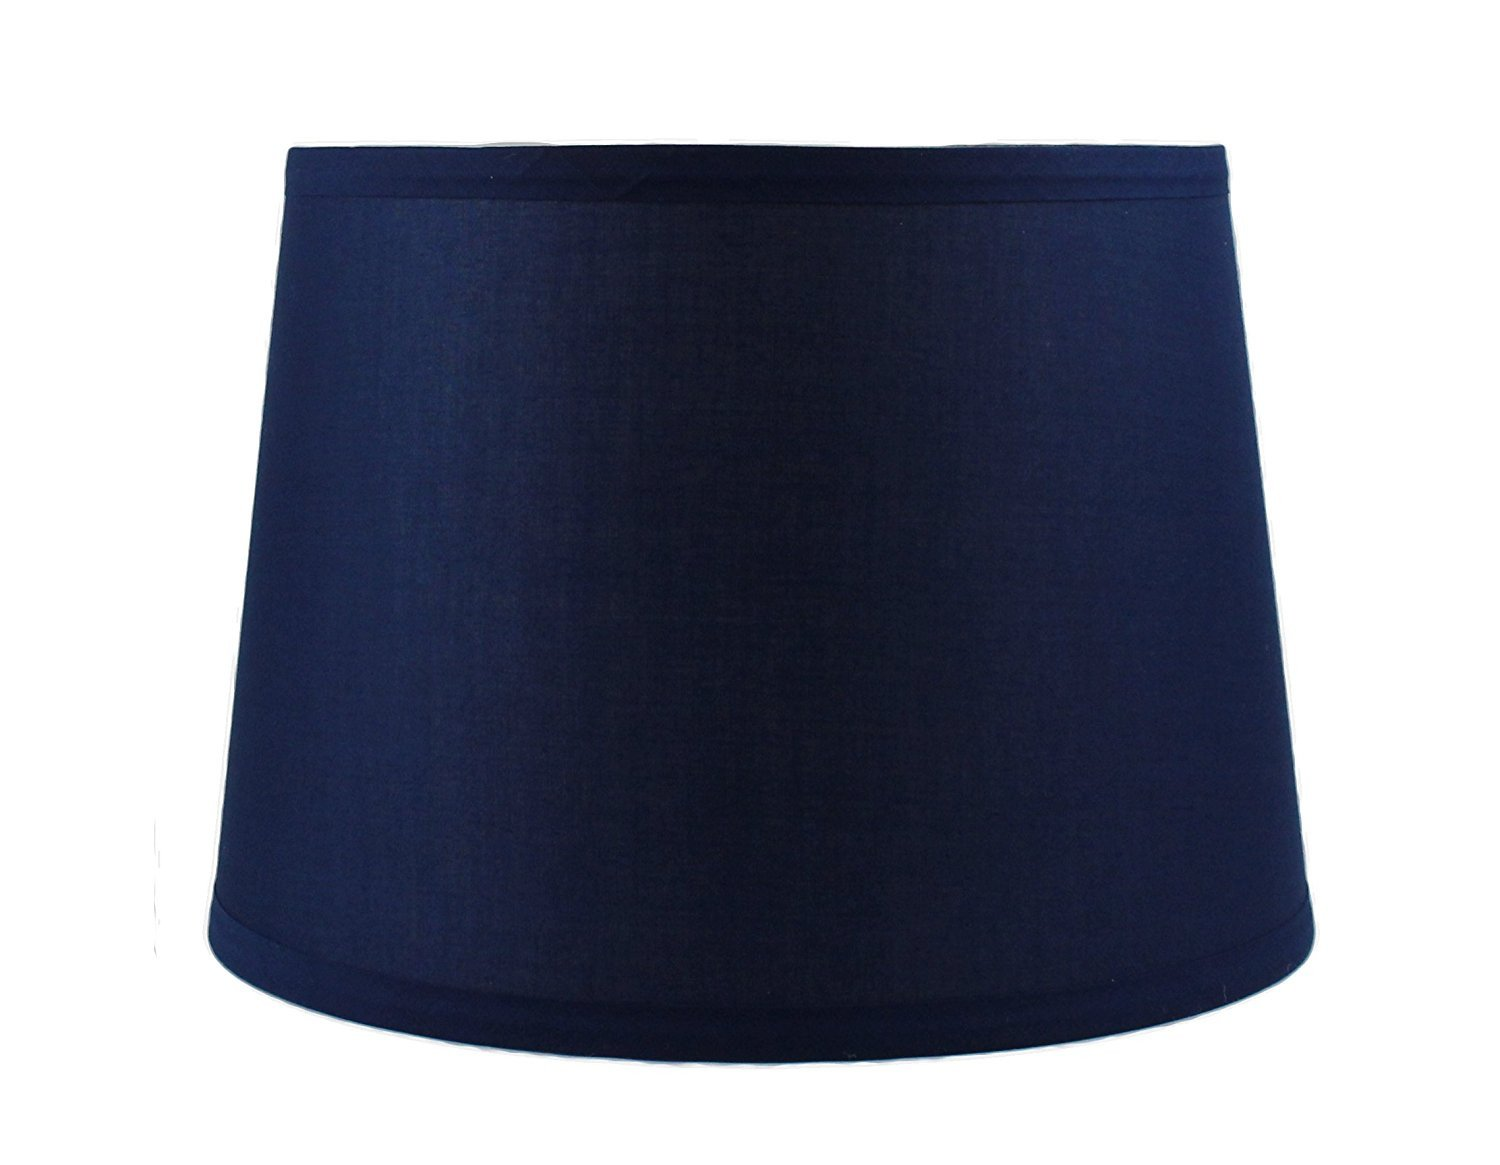 French Drum Lampshade, Cotton, 10-inch by 12-inch by 8 1/2-inch, Spider Washer Fitter